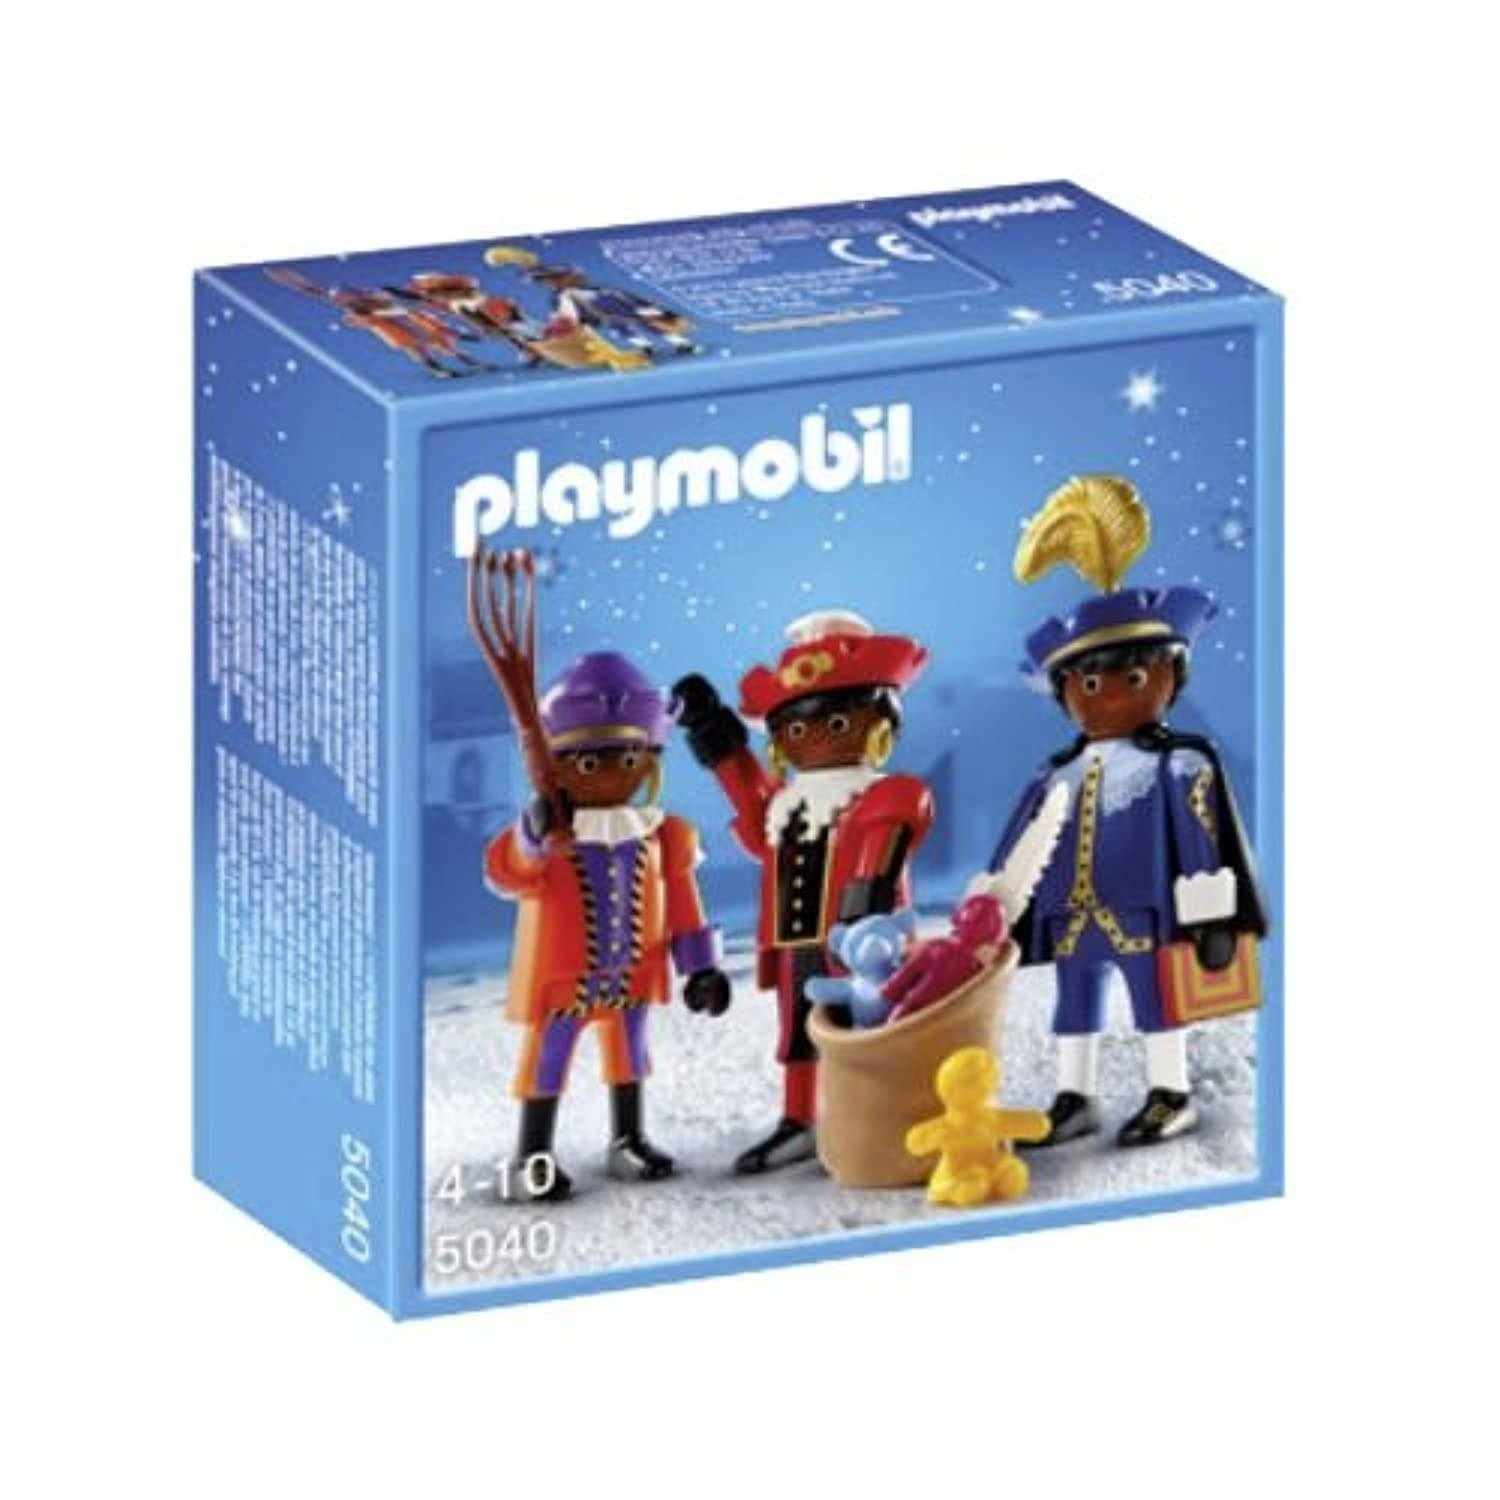 Playmobil 5040 - X-mas / Christmas - 3 Helper from Santa Claus / Nicolaus by Playmobil [並行輸入品]